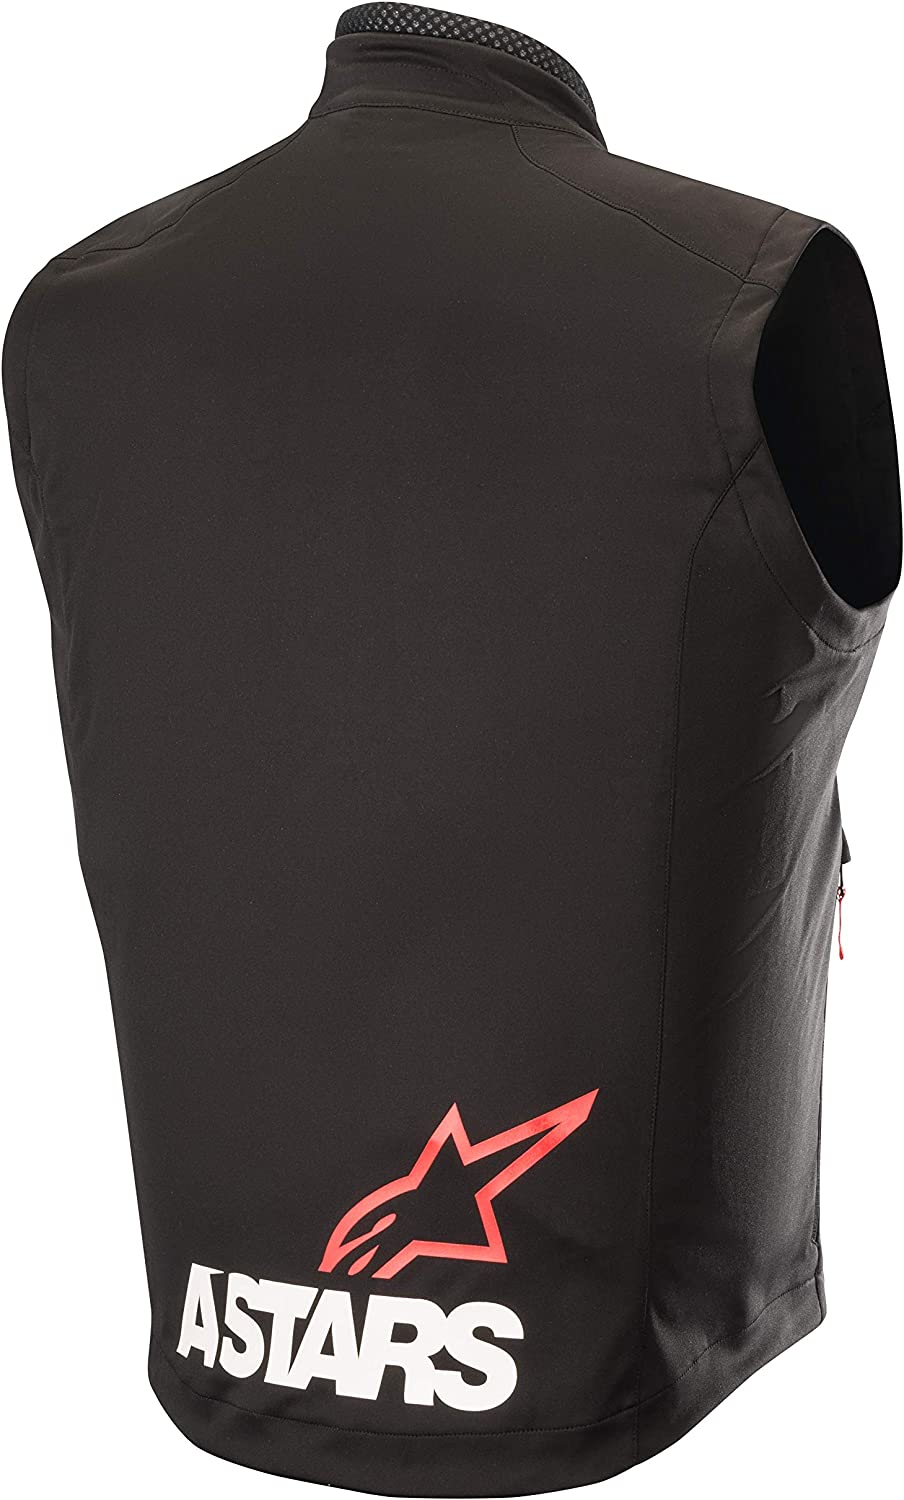 Chaleco para motocross Alpinestars Session Race talla 3XL color negro y rojo